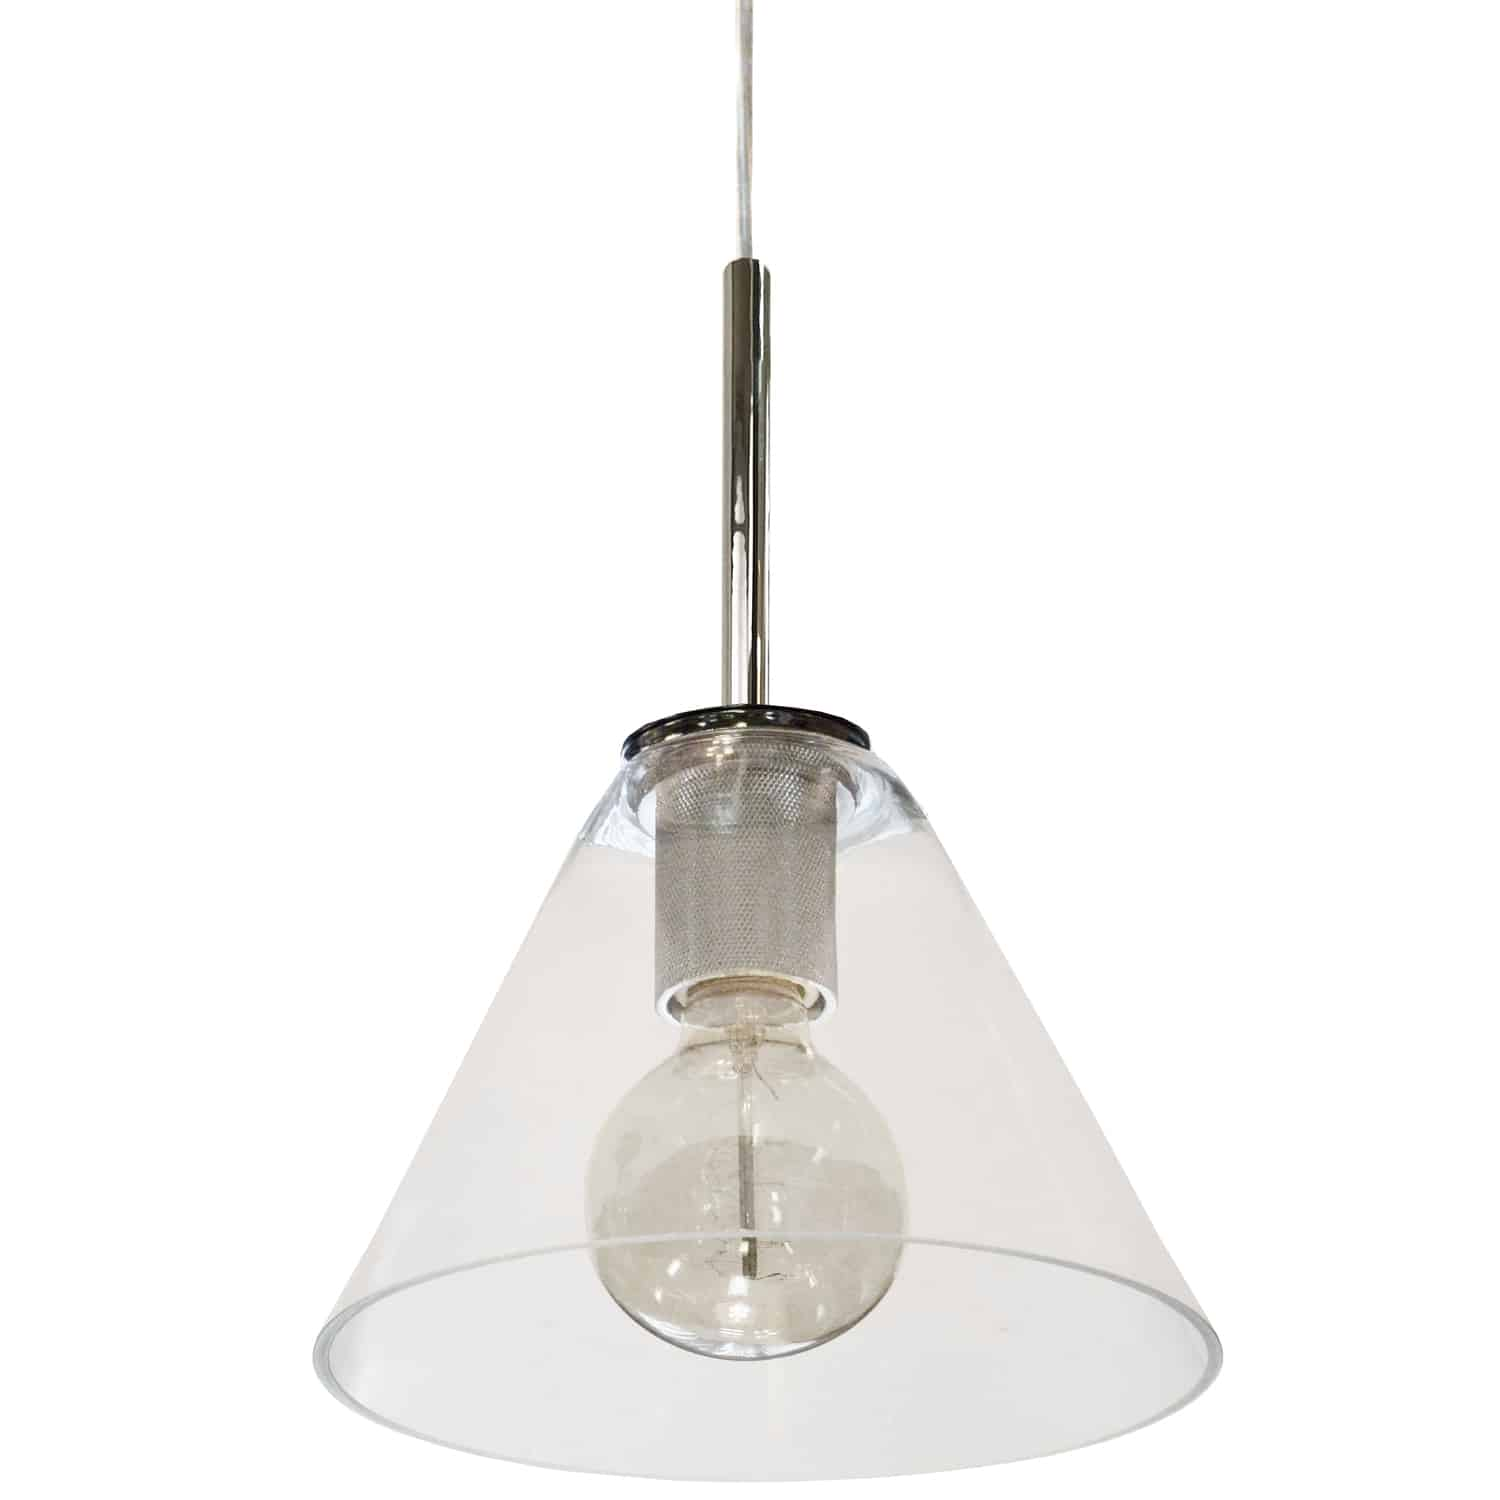 1 Light Incandescent Pendant, Polished Chrome with Clear Glass